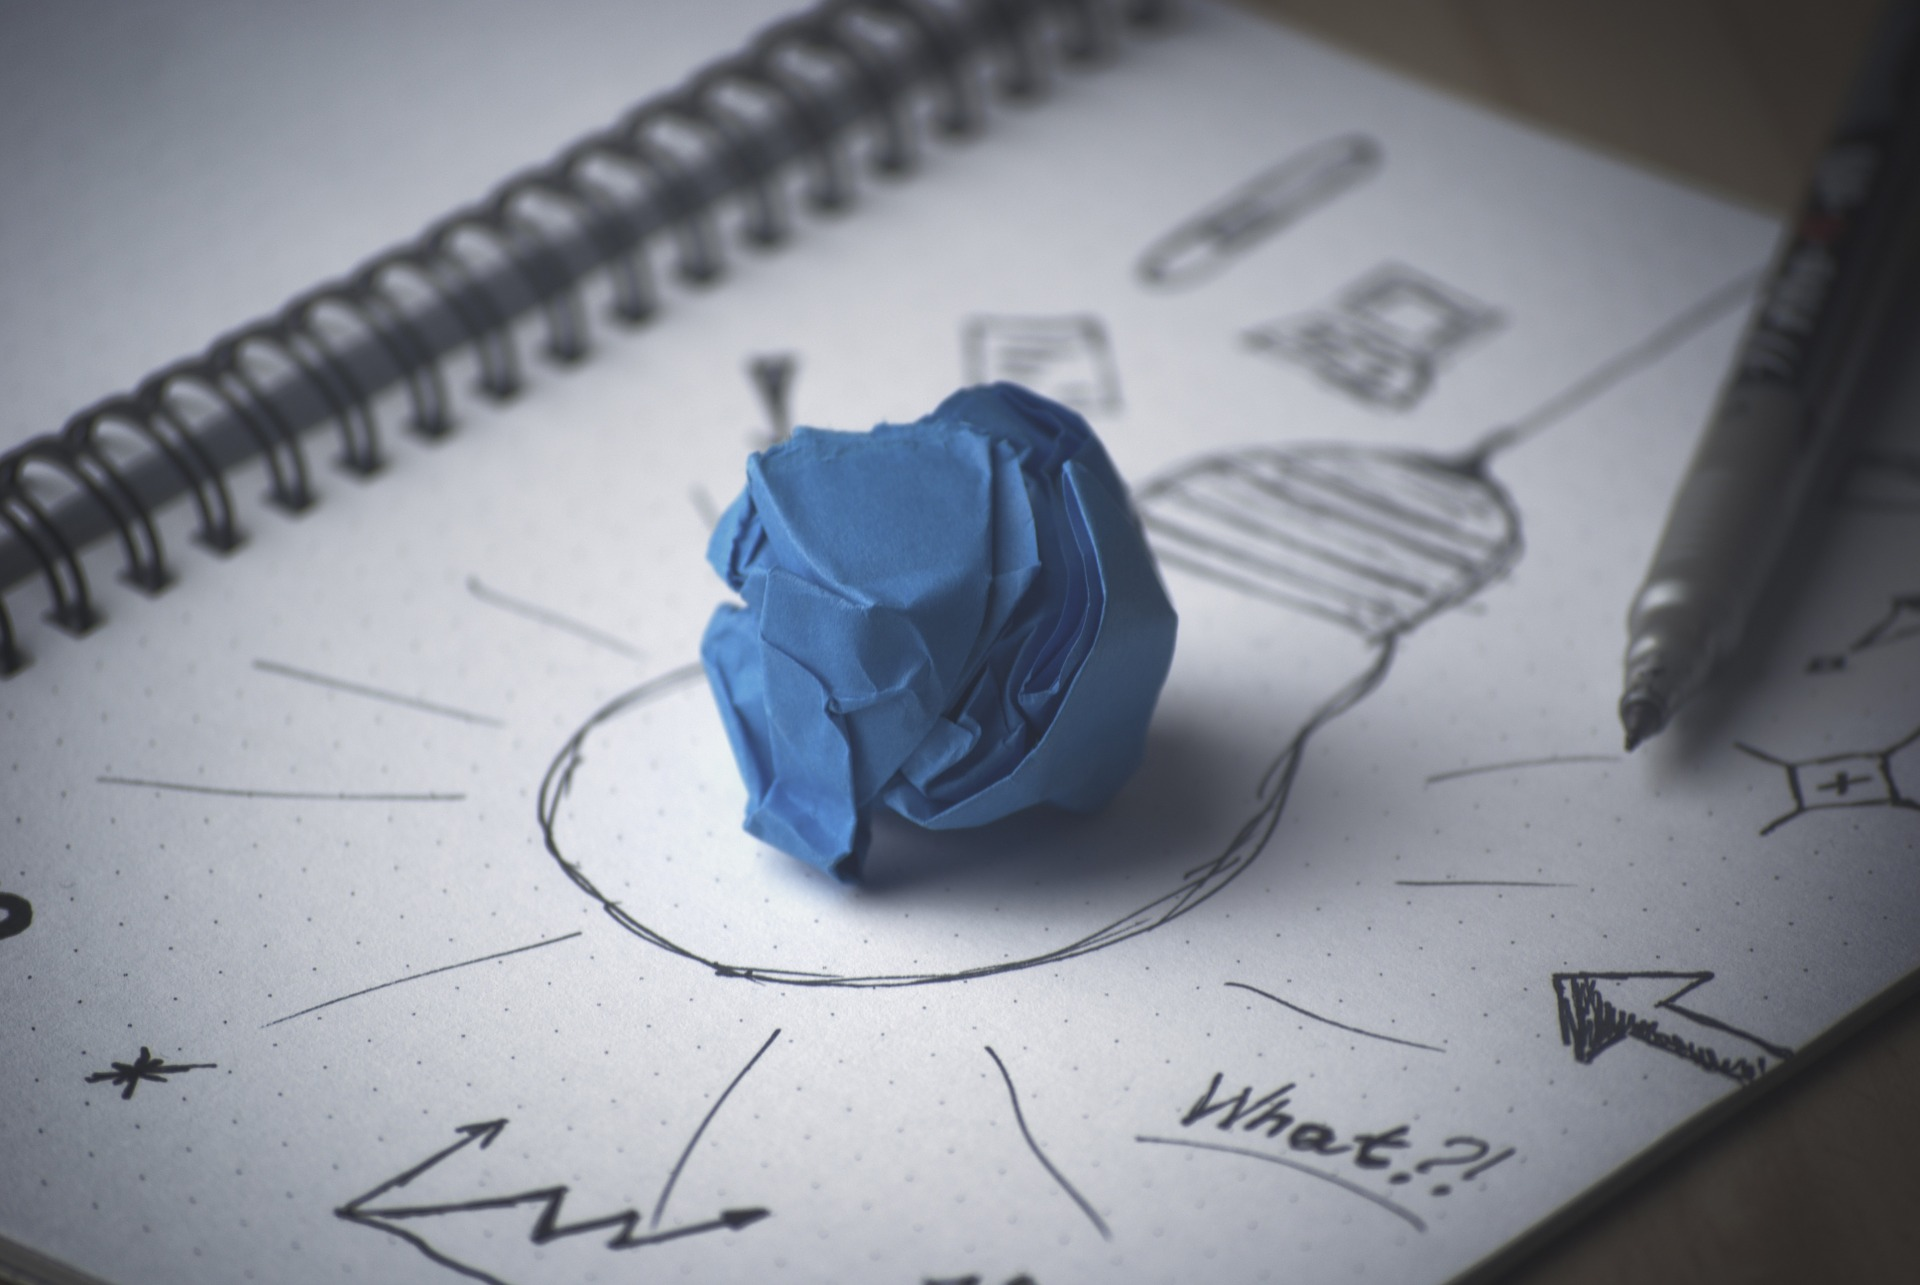 blue putty on sketch paper with drawing of lightbulb